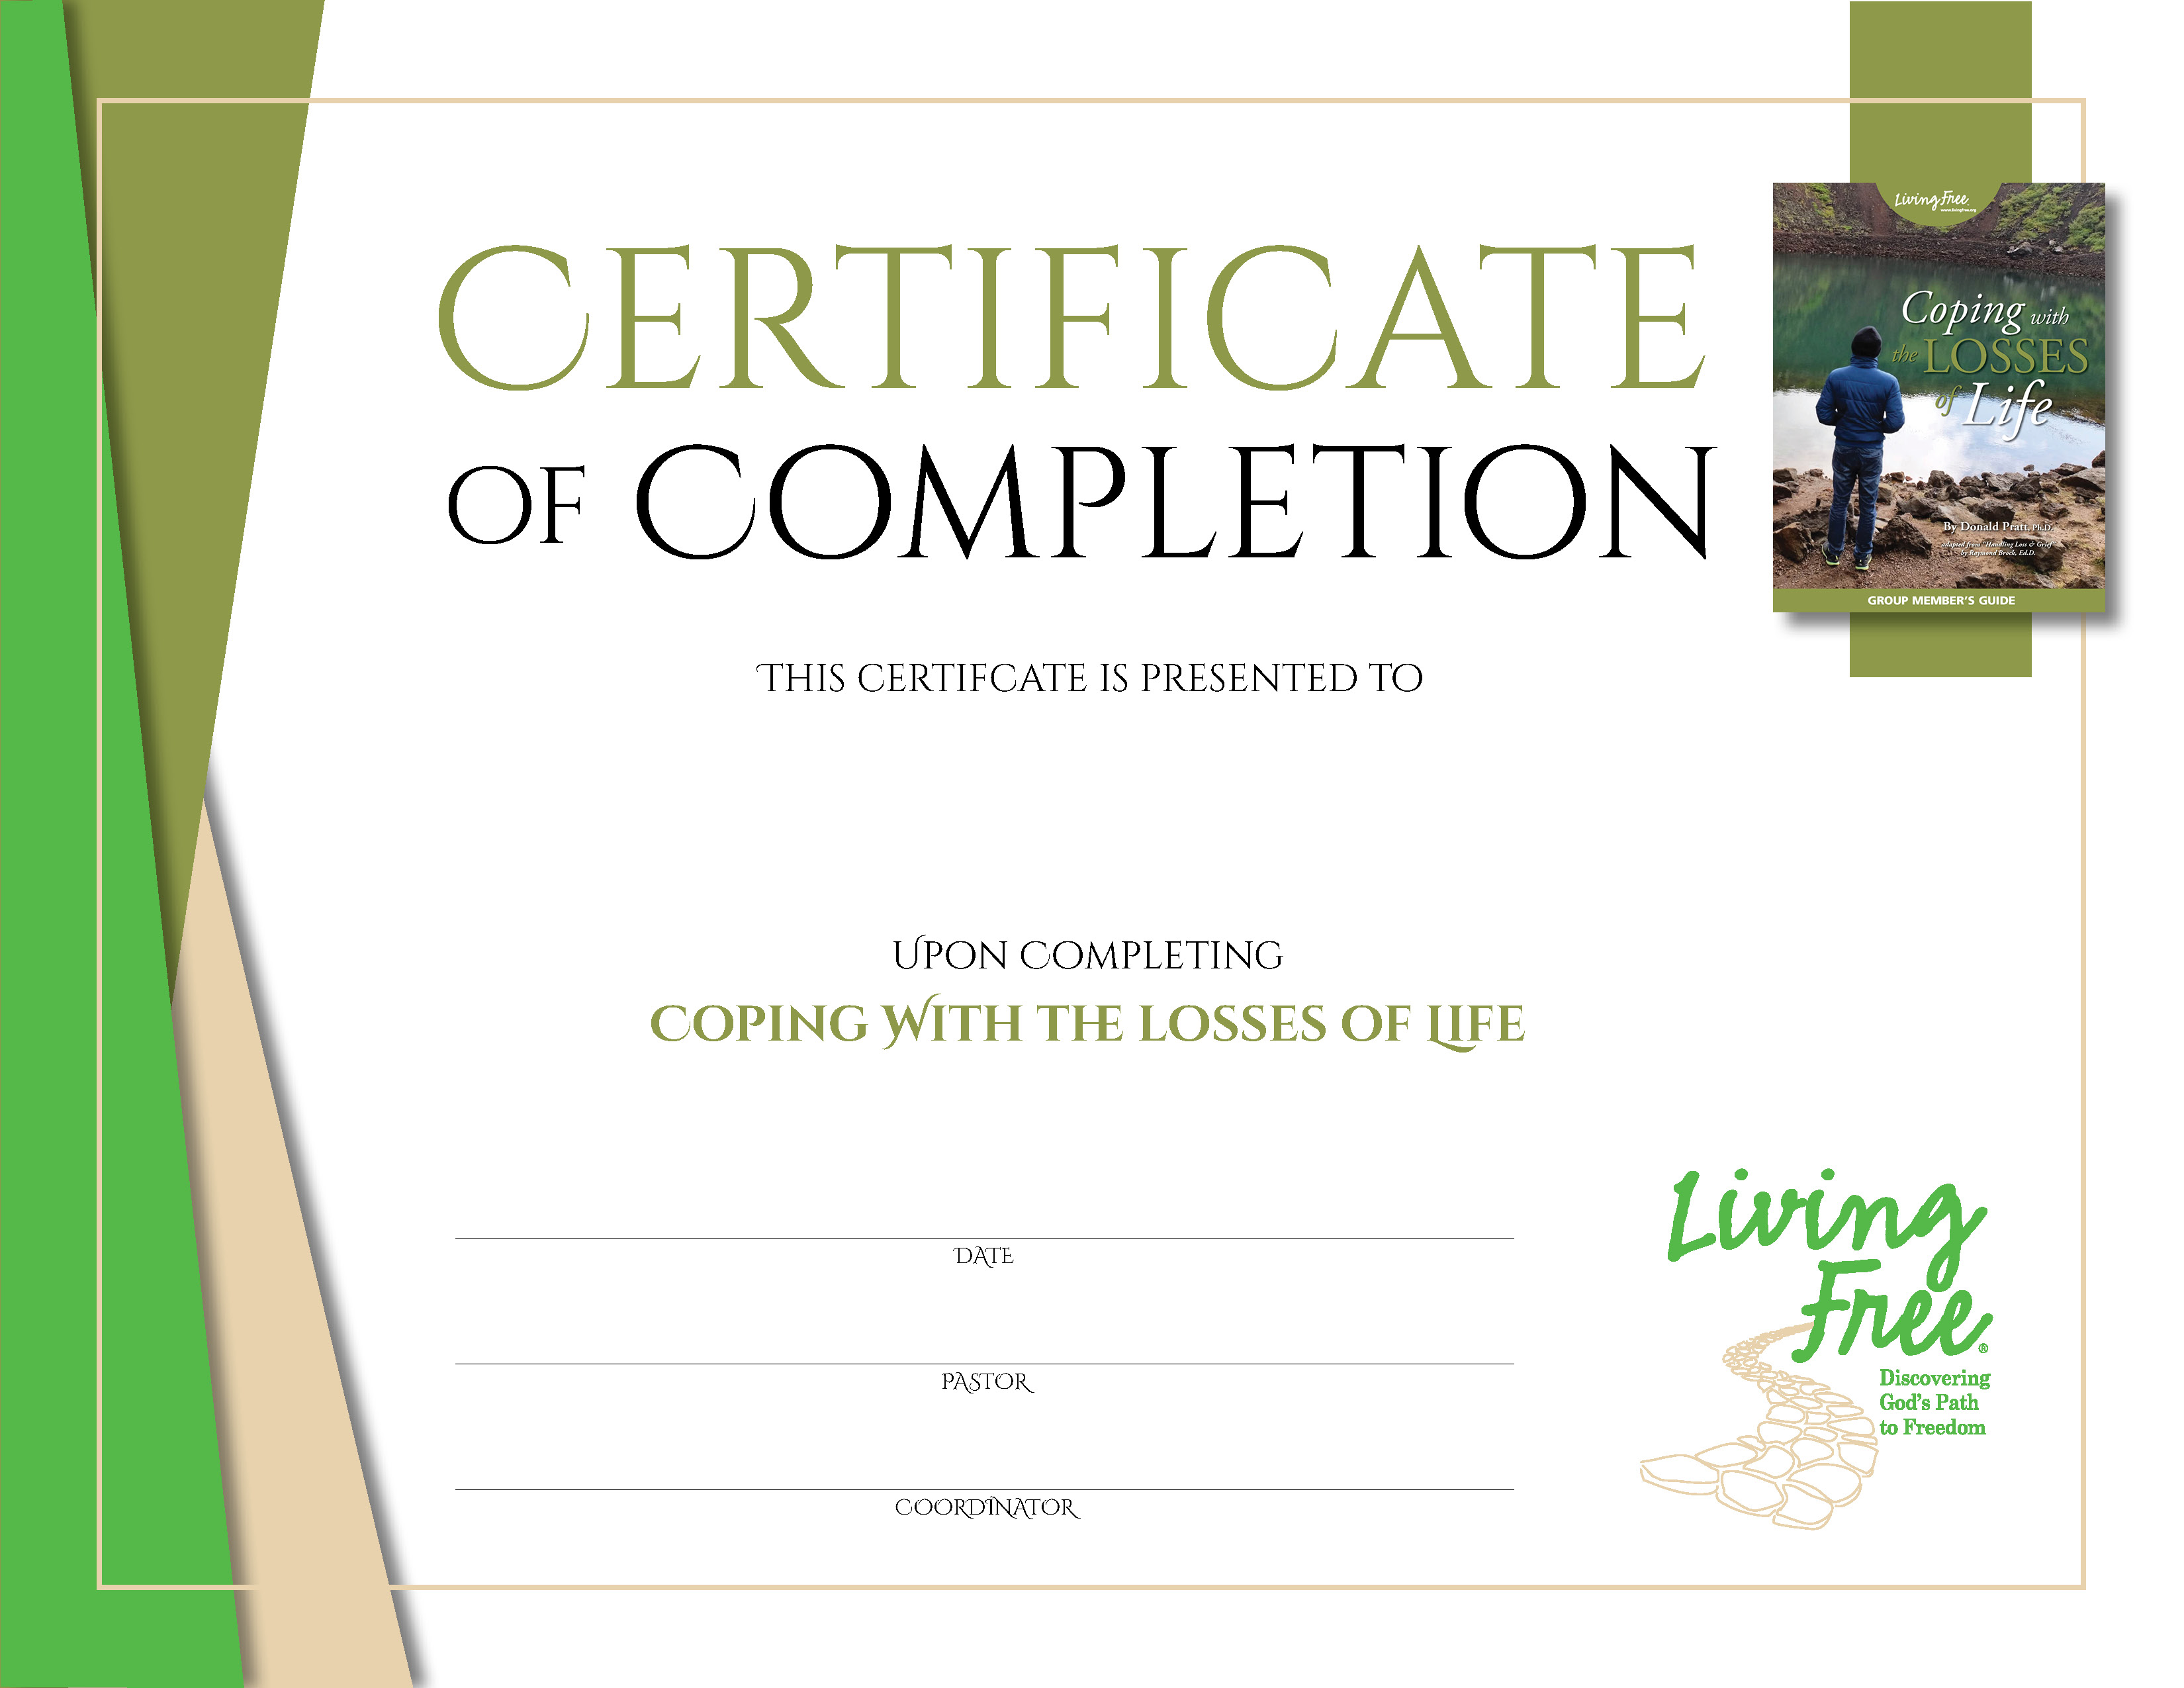 Coping with the Losses of Life Digital Certificate